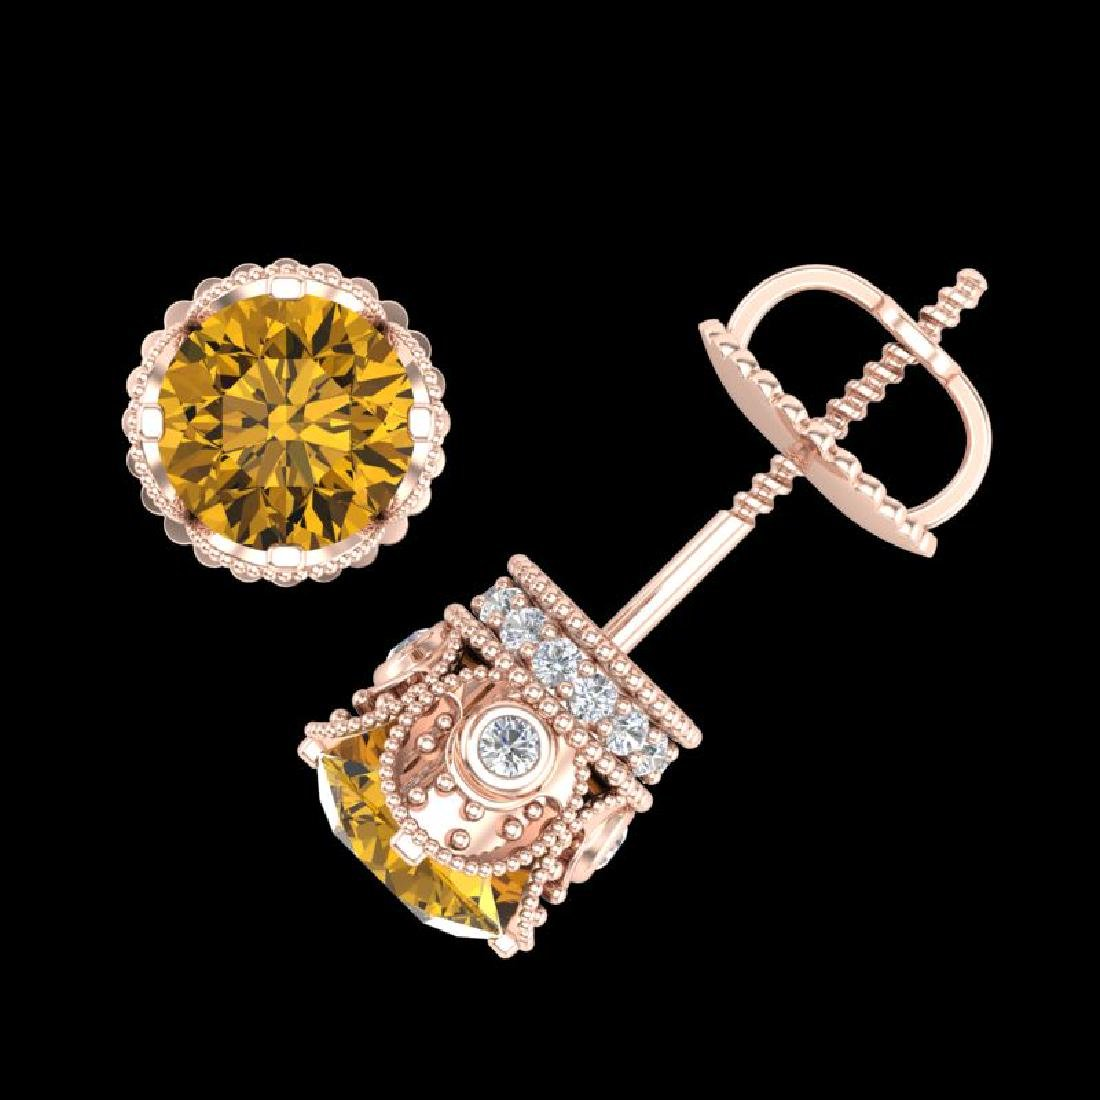 1.85 CTW Intense Fancy Yellow Diamond Art Deco Stud - 2